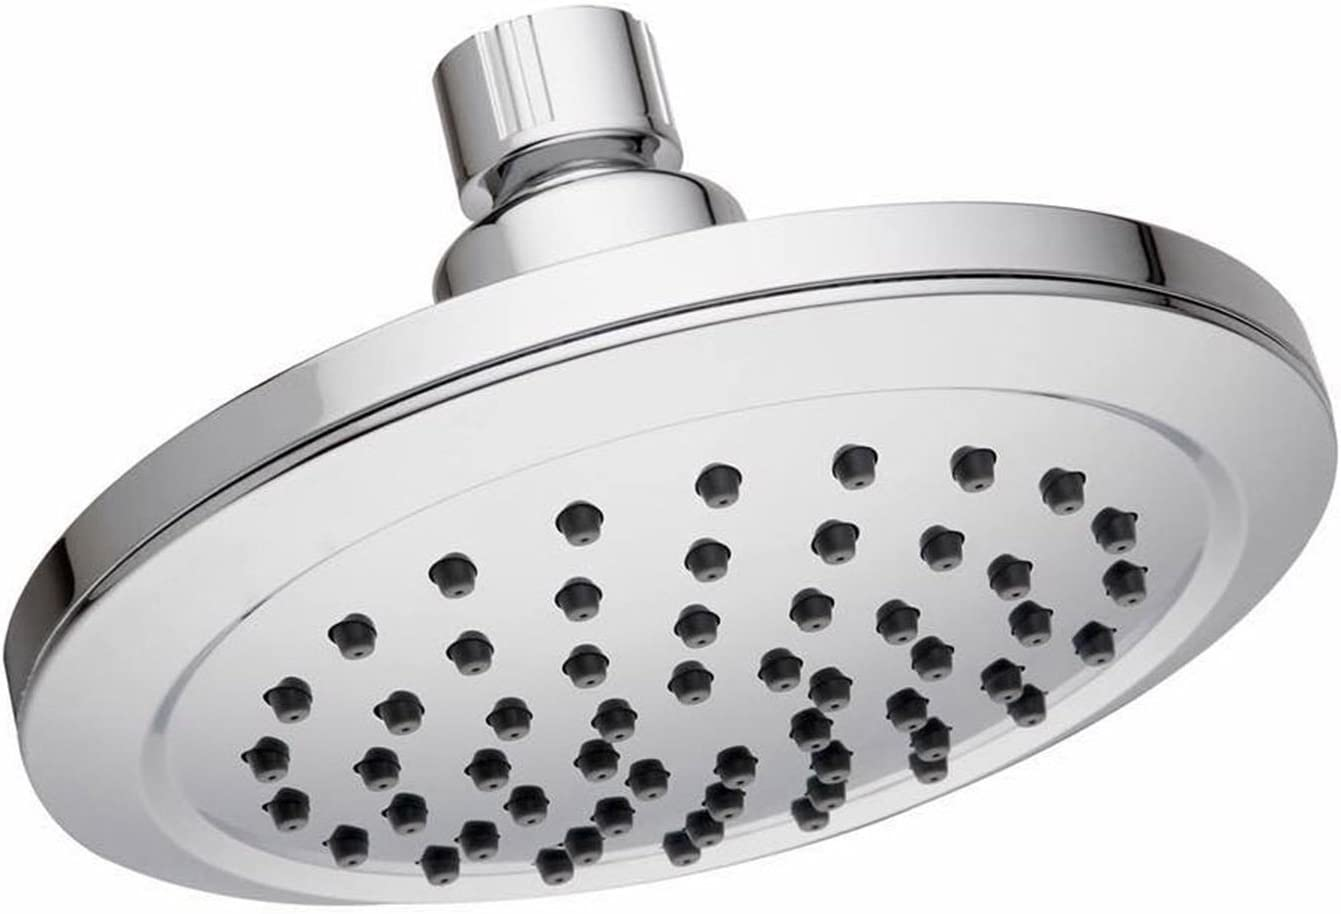 Hibbent 6-inch High Pressure Rainfall Showerhead – Angle-Adjustable Wall Mount Single-Setting Waterfall Shower Head with Powerful Rain Spray Shower Jets Massage – Polshed Chrome